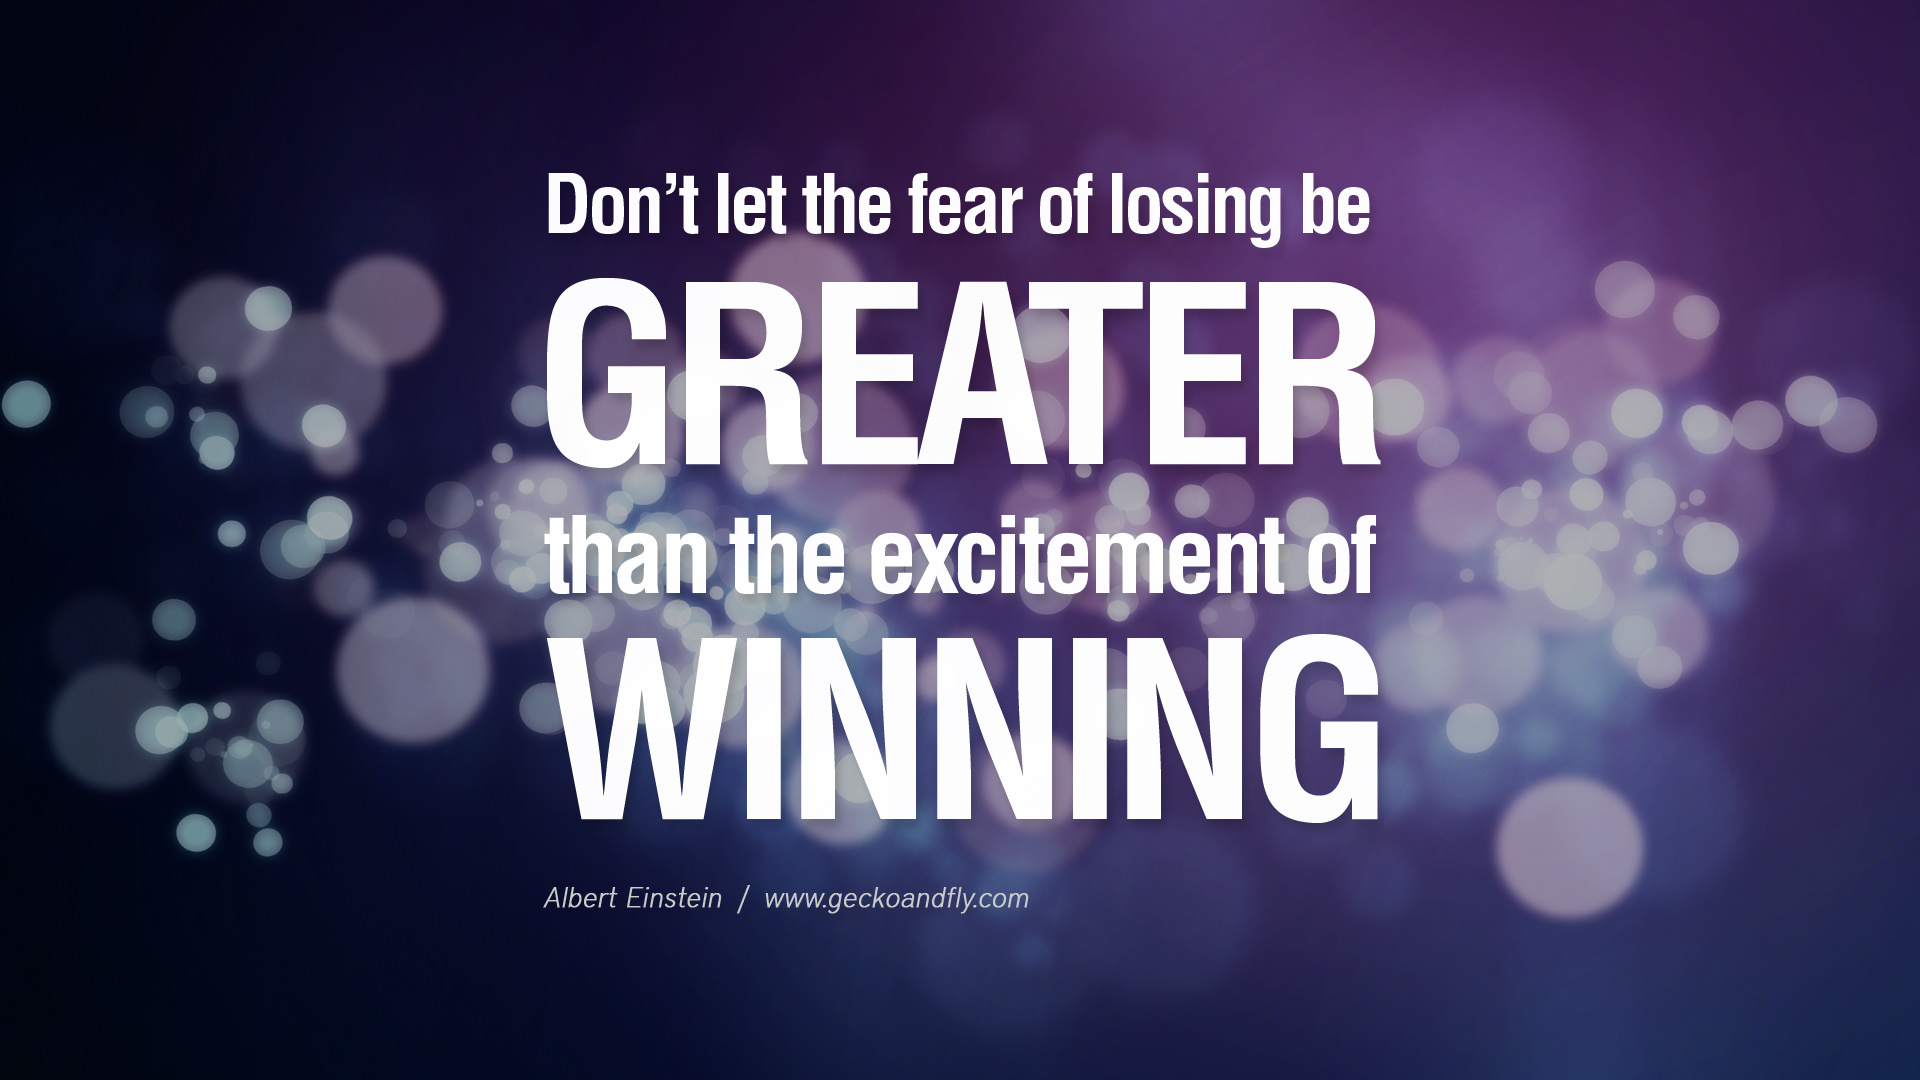 Success Quotes Sayings Pictures And Images: Famous Quotes About Losing Sports. QuotesGram